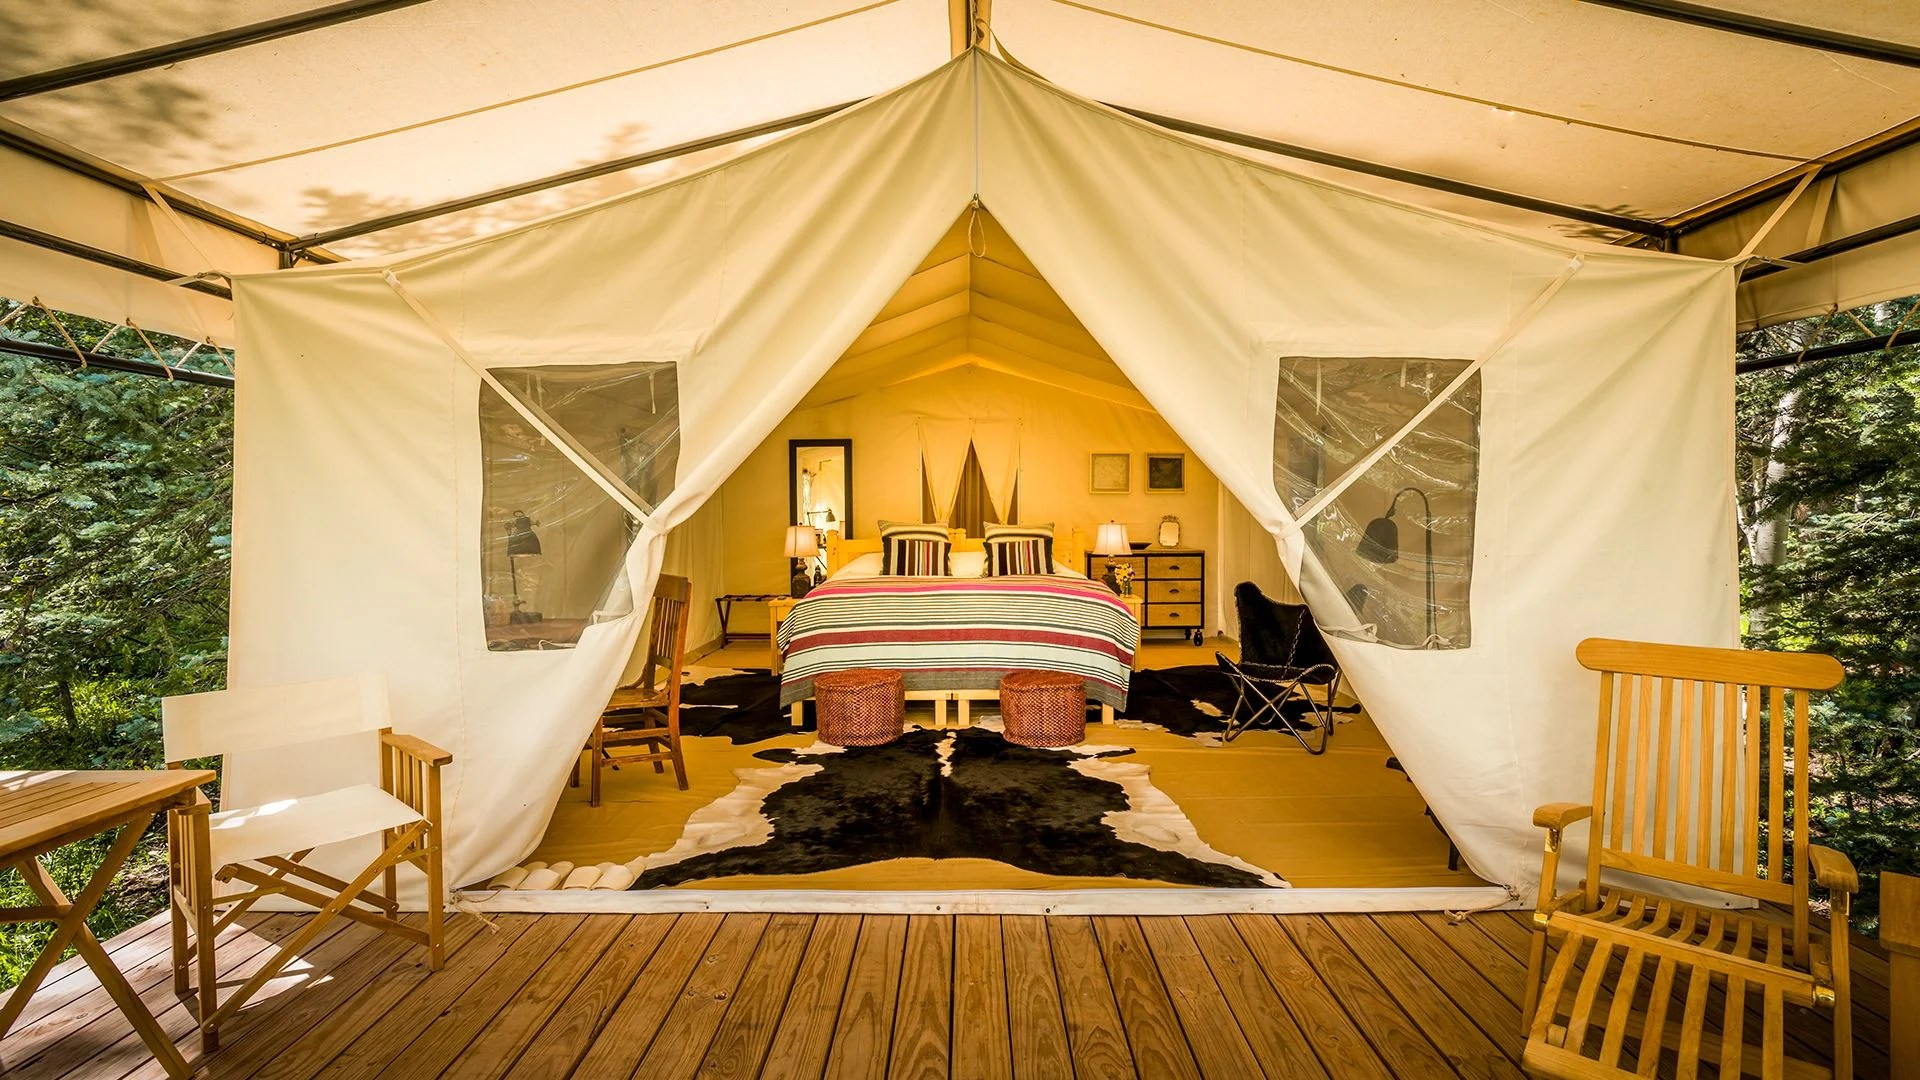 The best glamping spots in the US